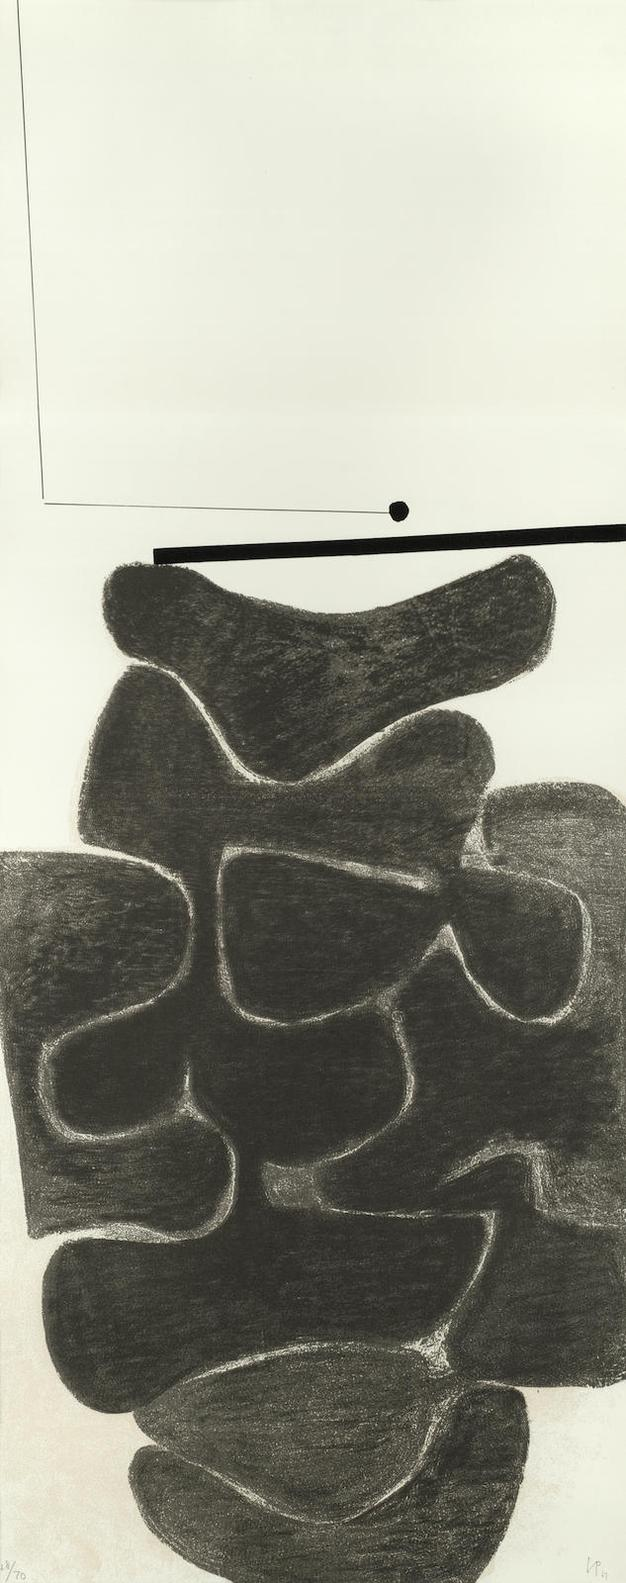 Victor Pasmore-Points Of Contact No. 12-1967